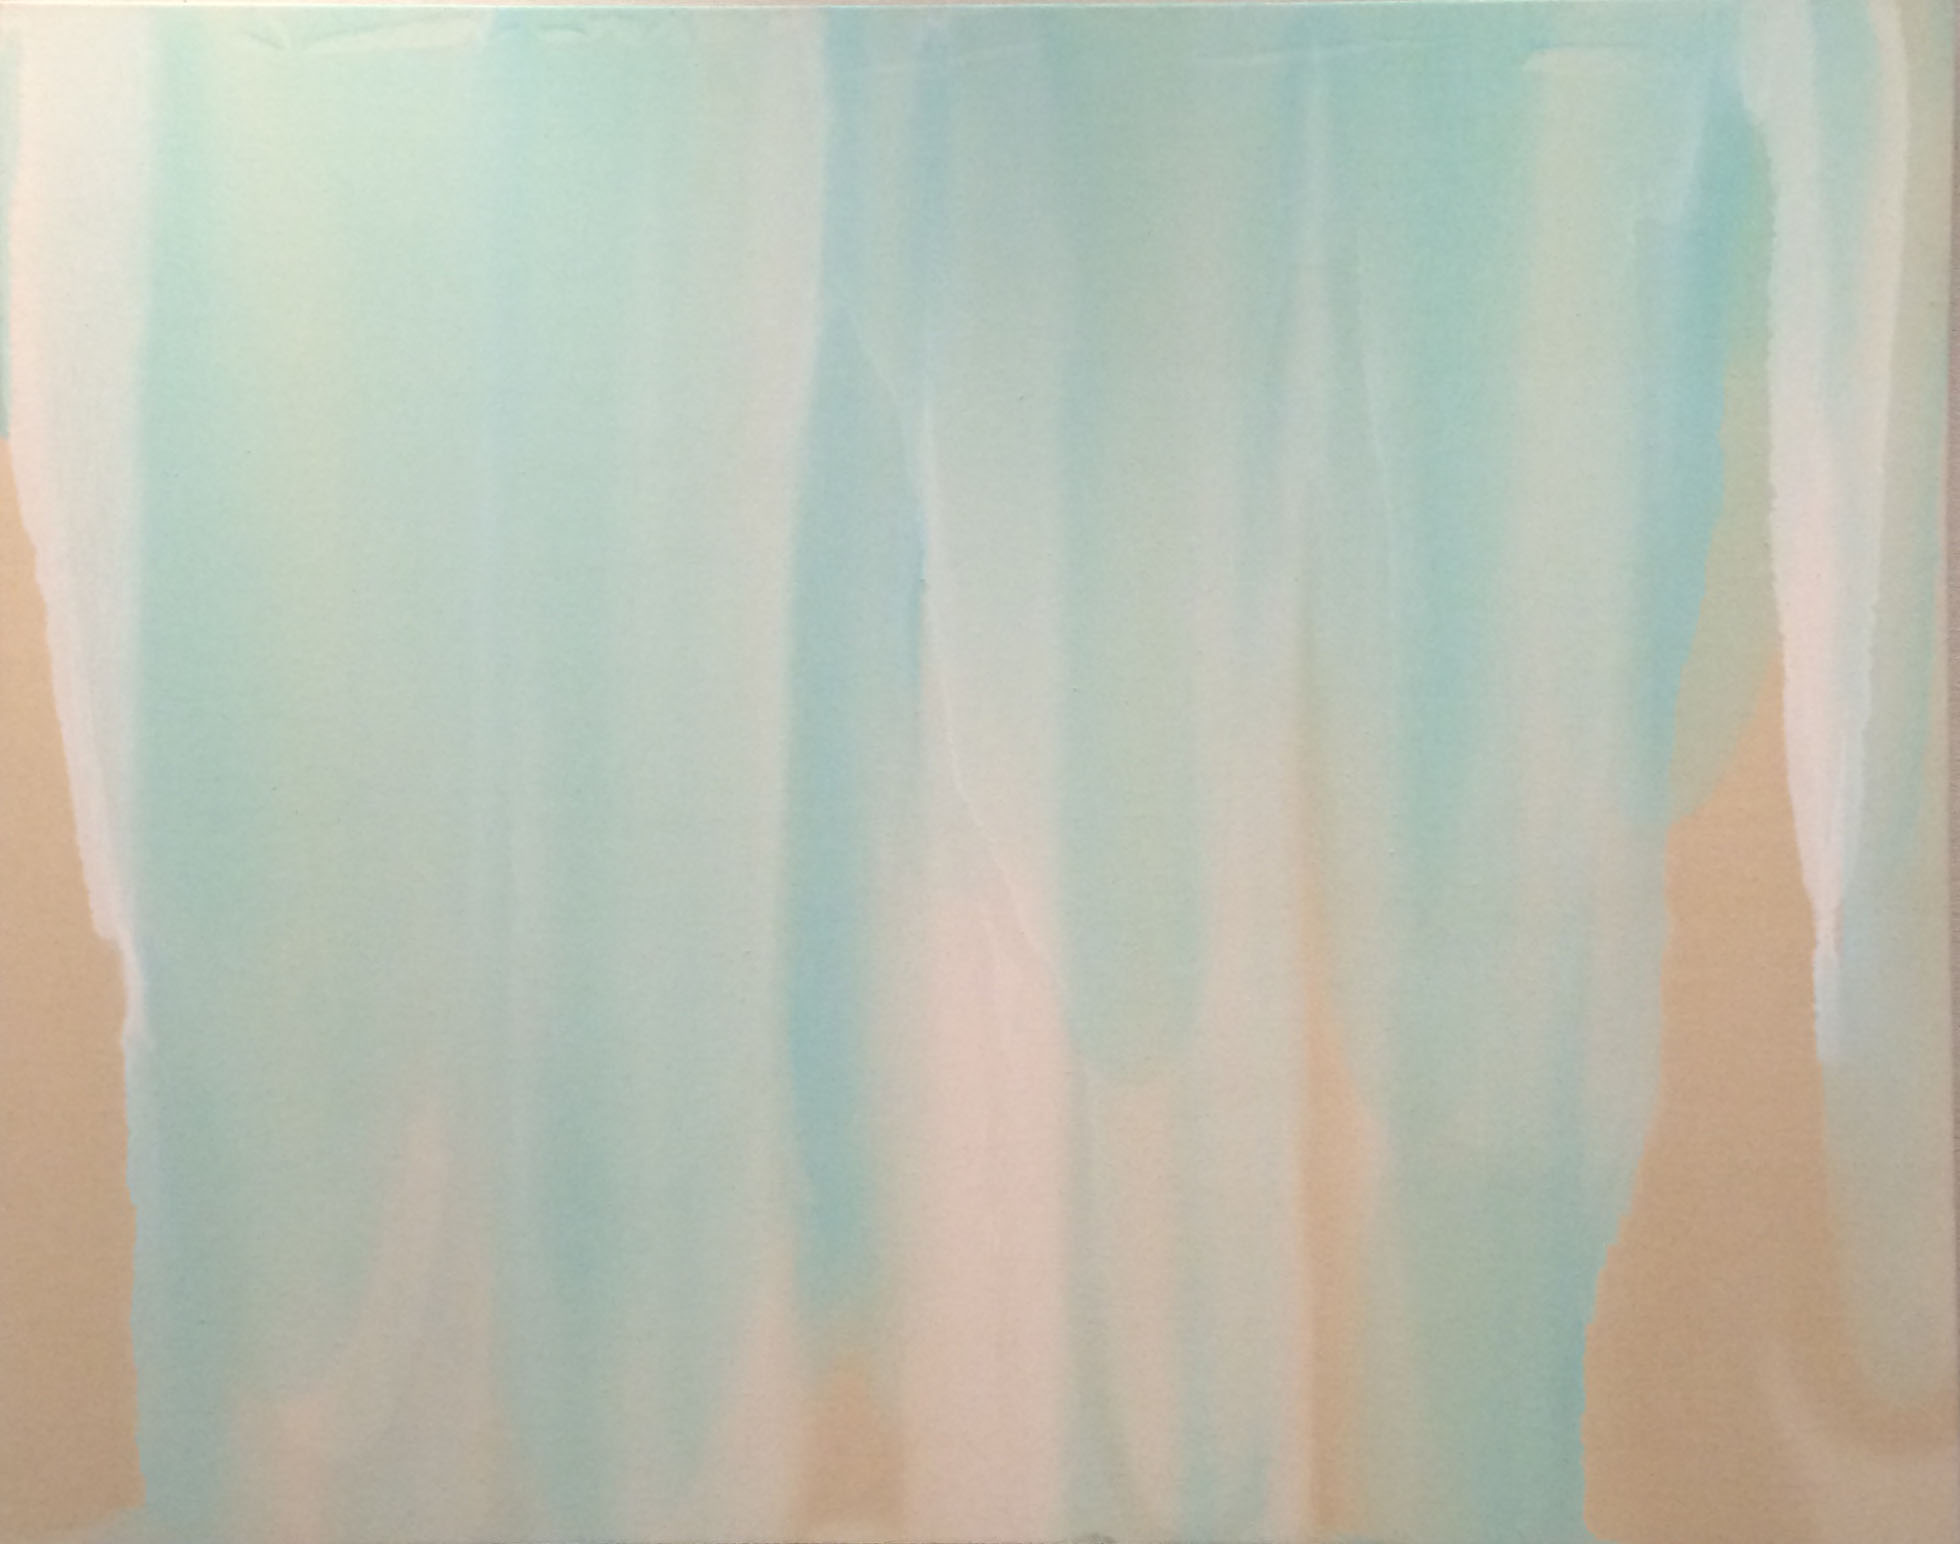 Waterfalls , 2014, oil on canvas, 38 x 48 inches.